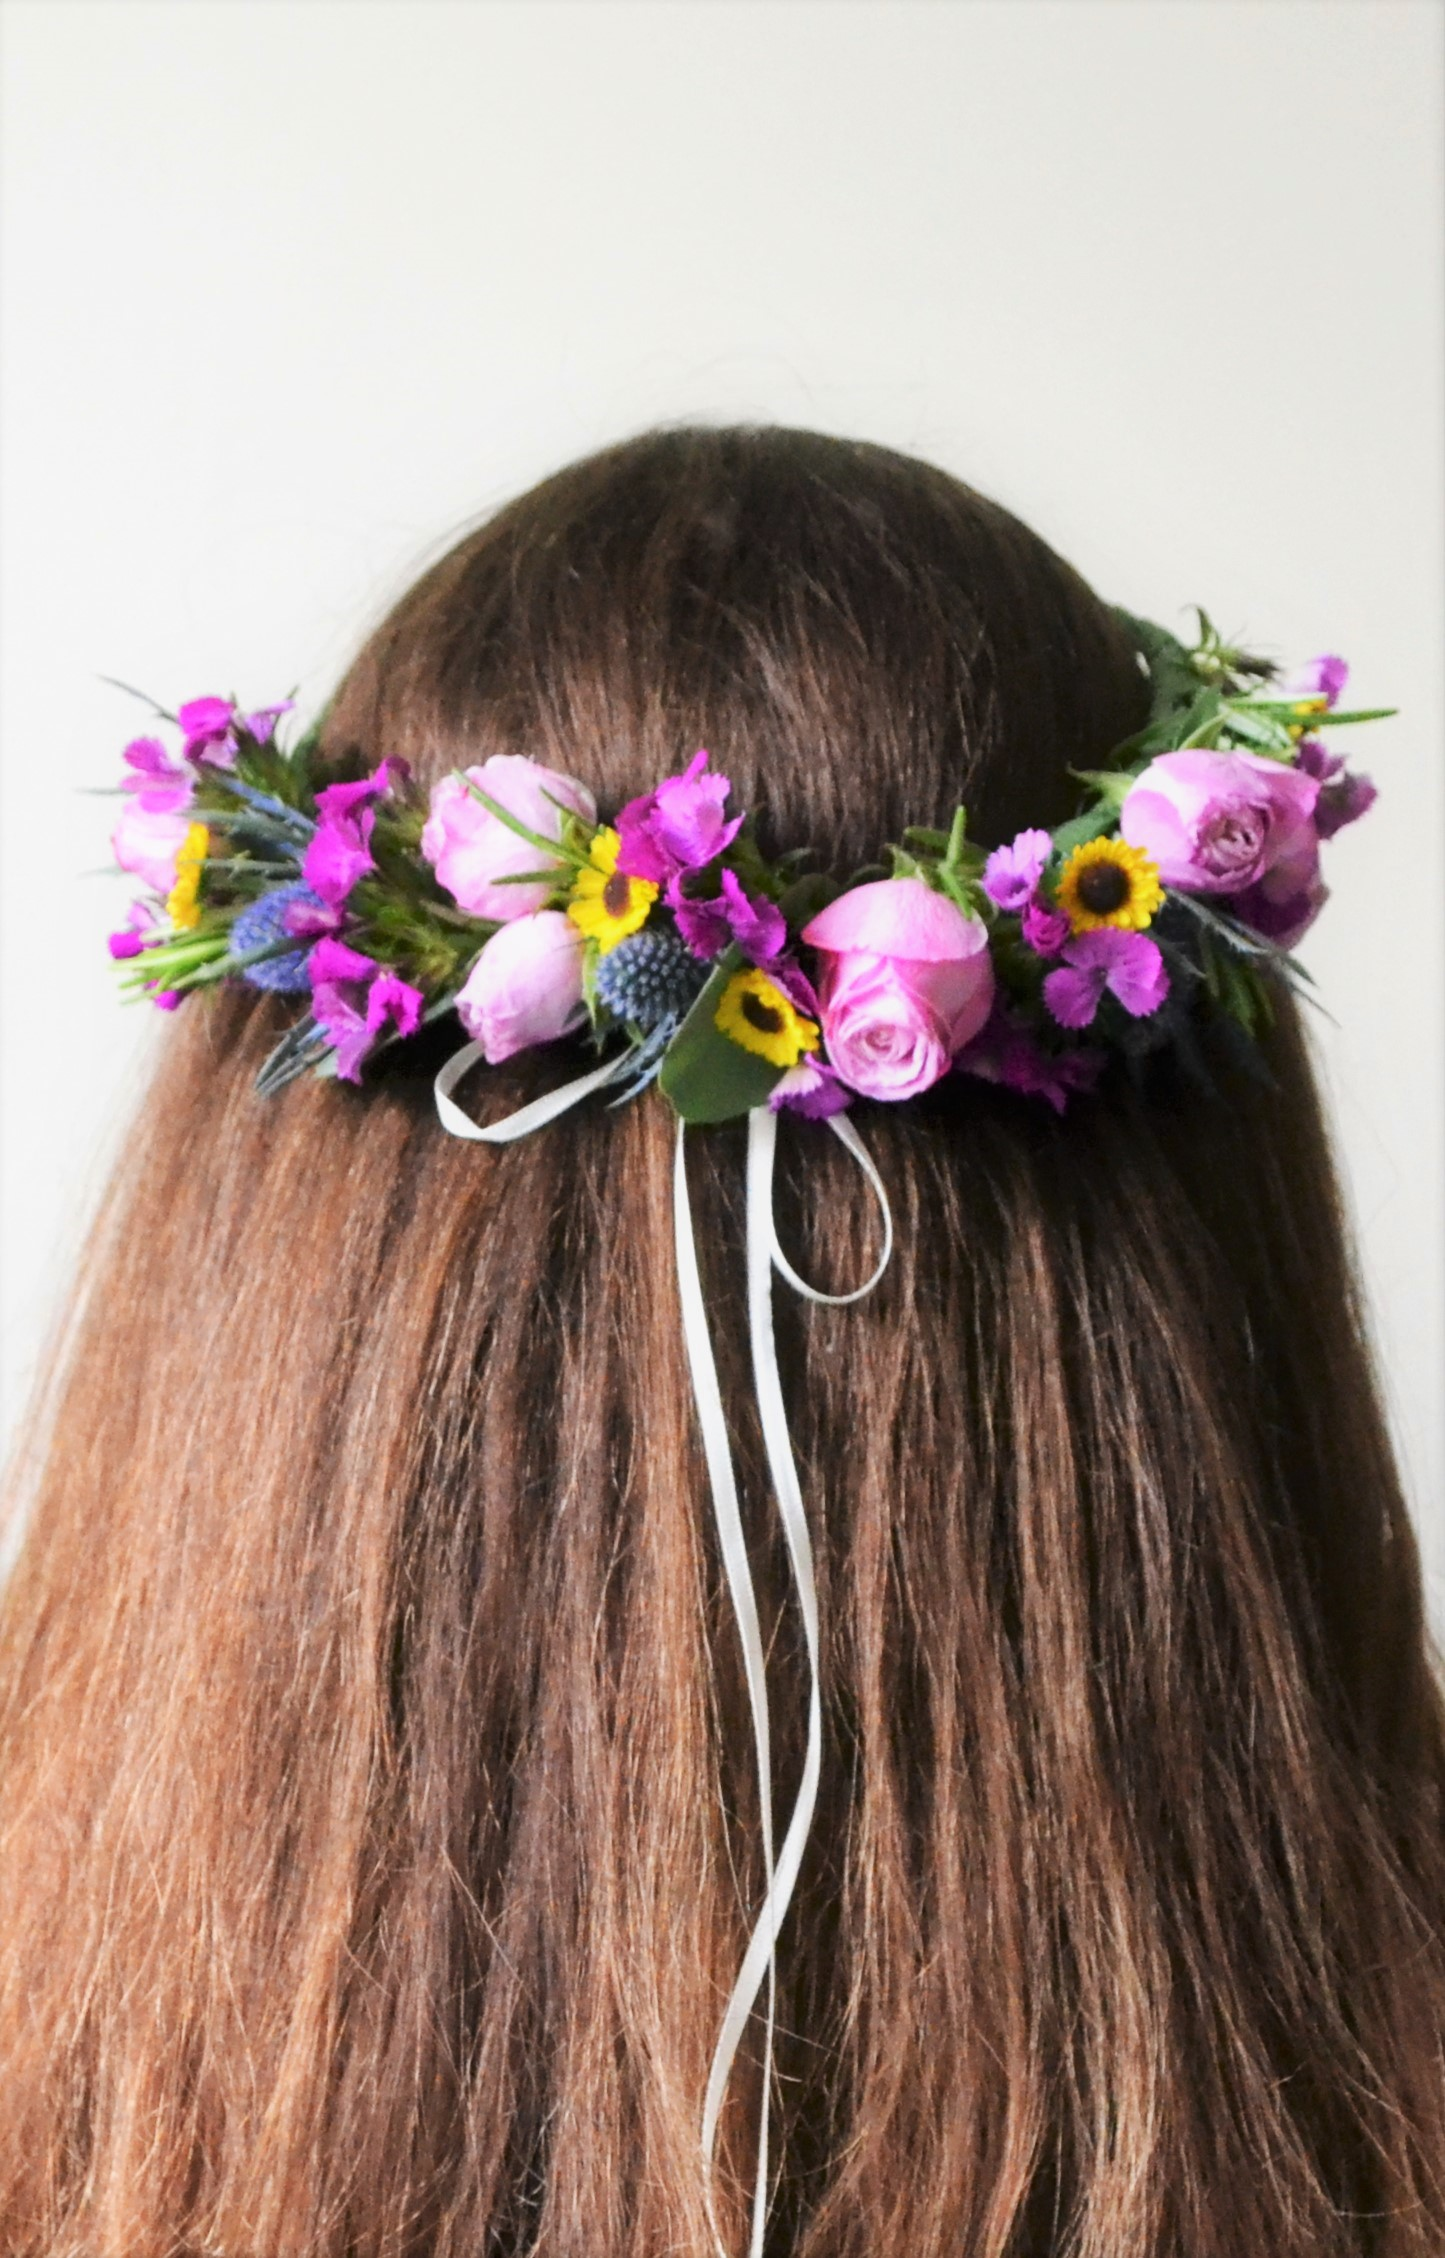 Webb-and-Farrer-Flower-Crown-DIY--Hen-Party-Workshop-Brighton (8).JPG